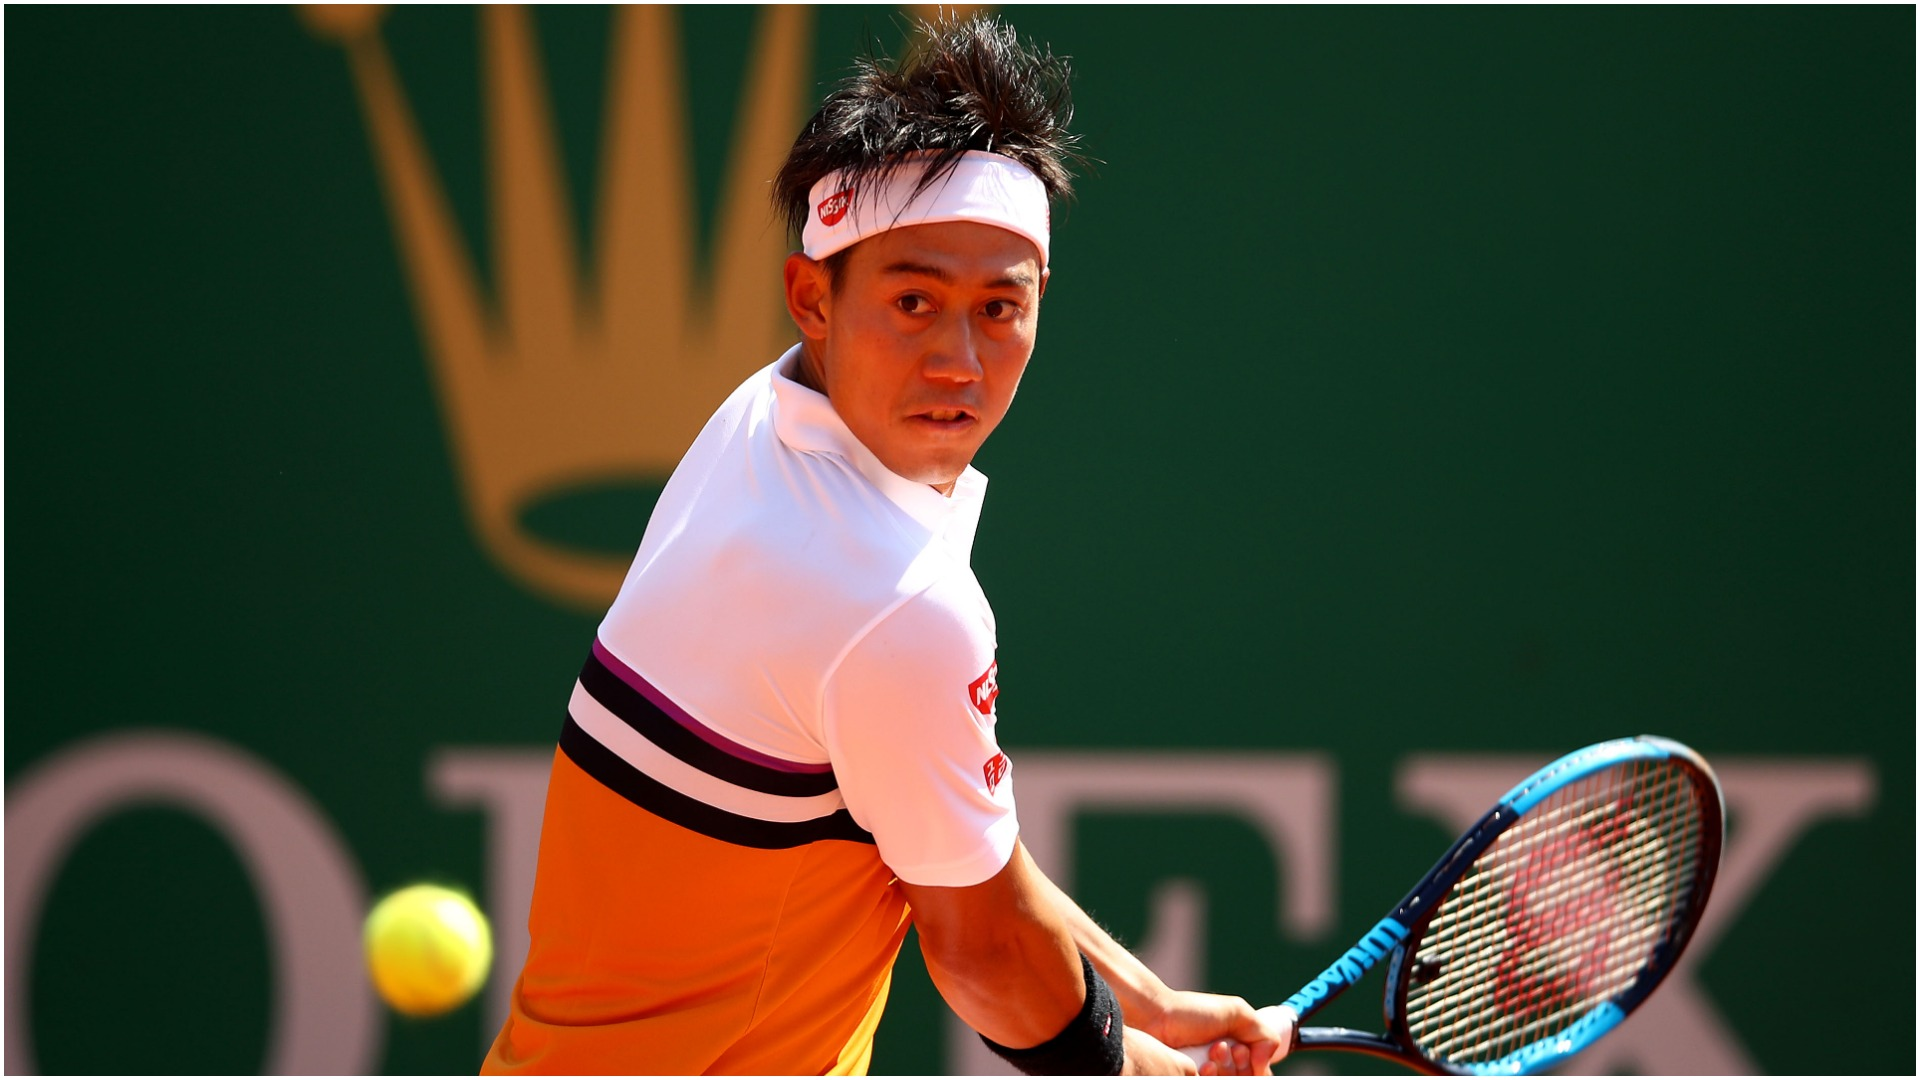 Nishikori unable to join Nadal with Monte Carlo progress